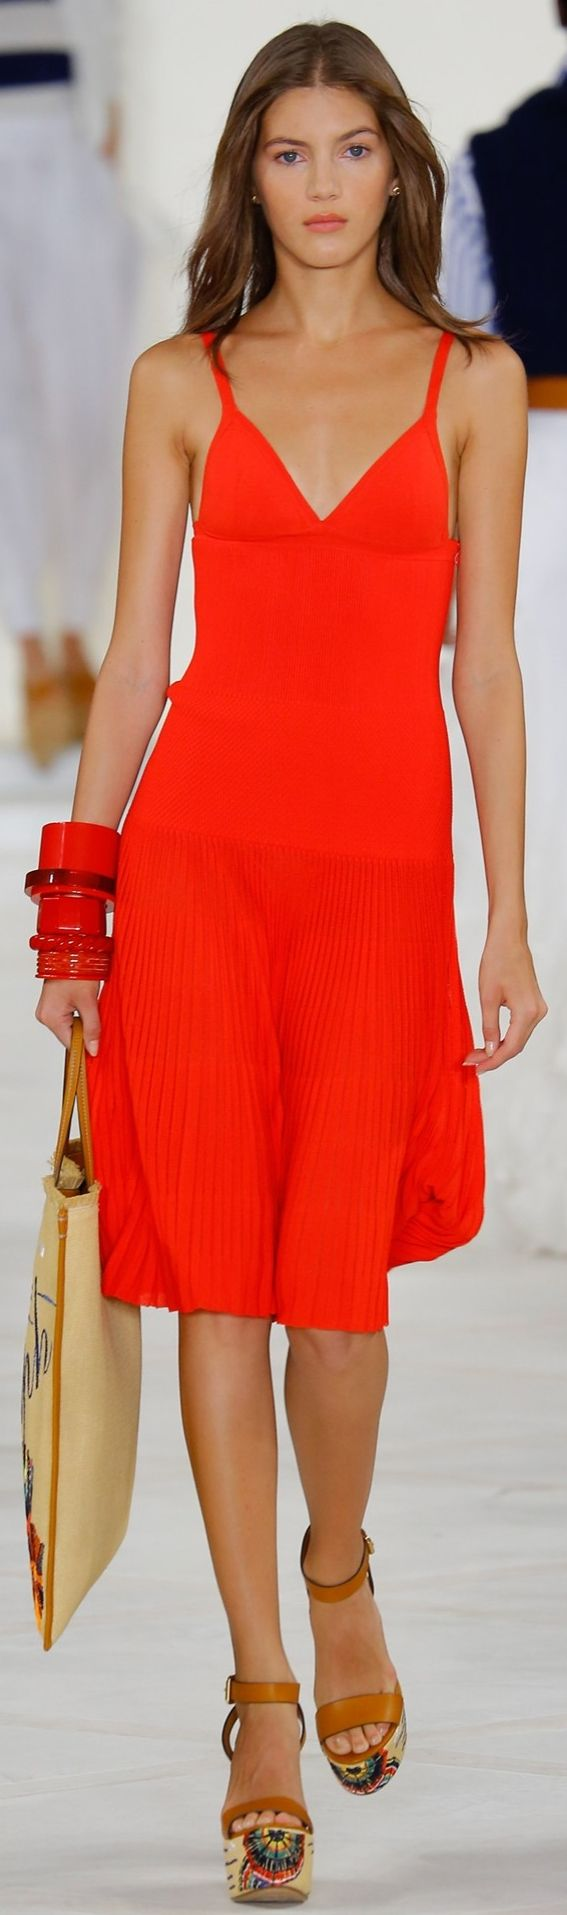 @ralphlauren Amazing red dress for woman. #dress #woman #red